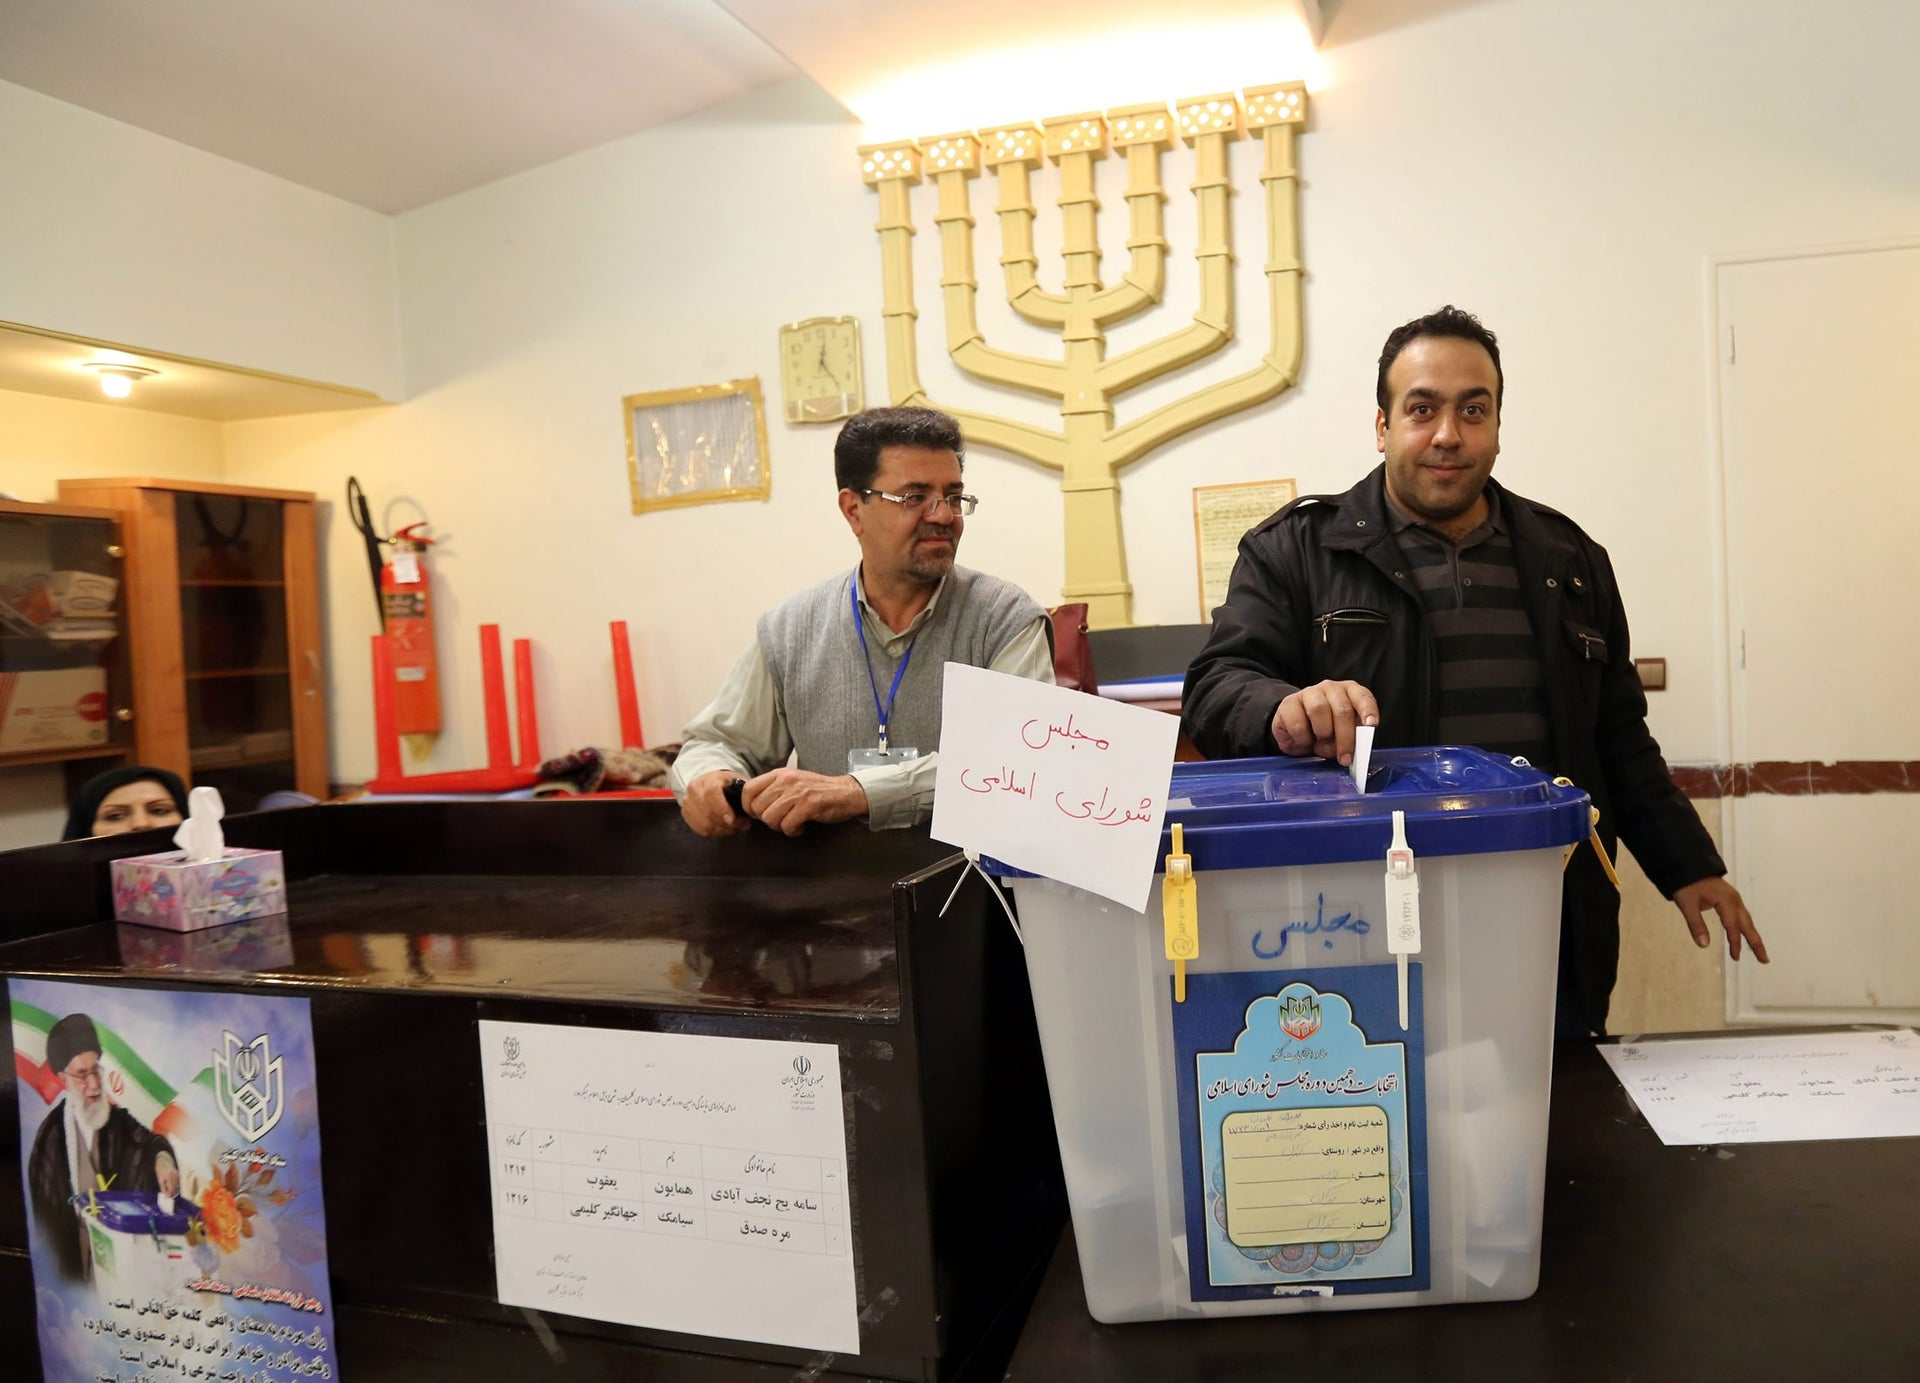 A Jewish Iranian casts his vote at a synagogue used as a polling station for the Jewish community in Tehran on February 26, 2016.